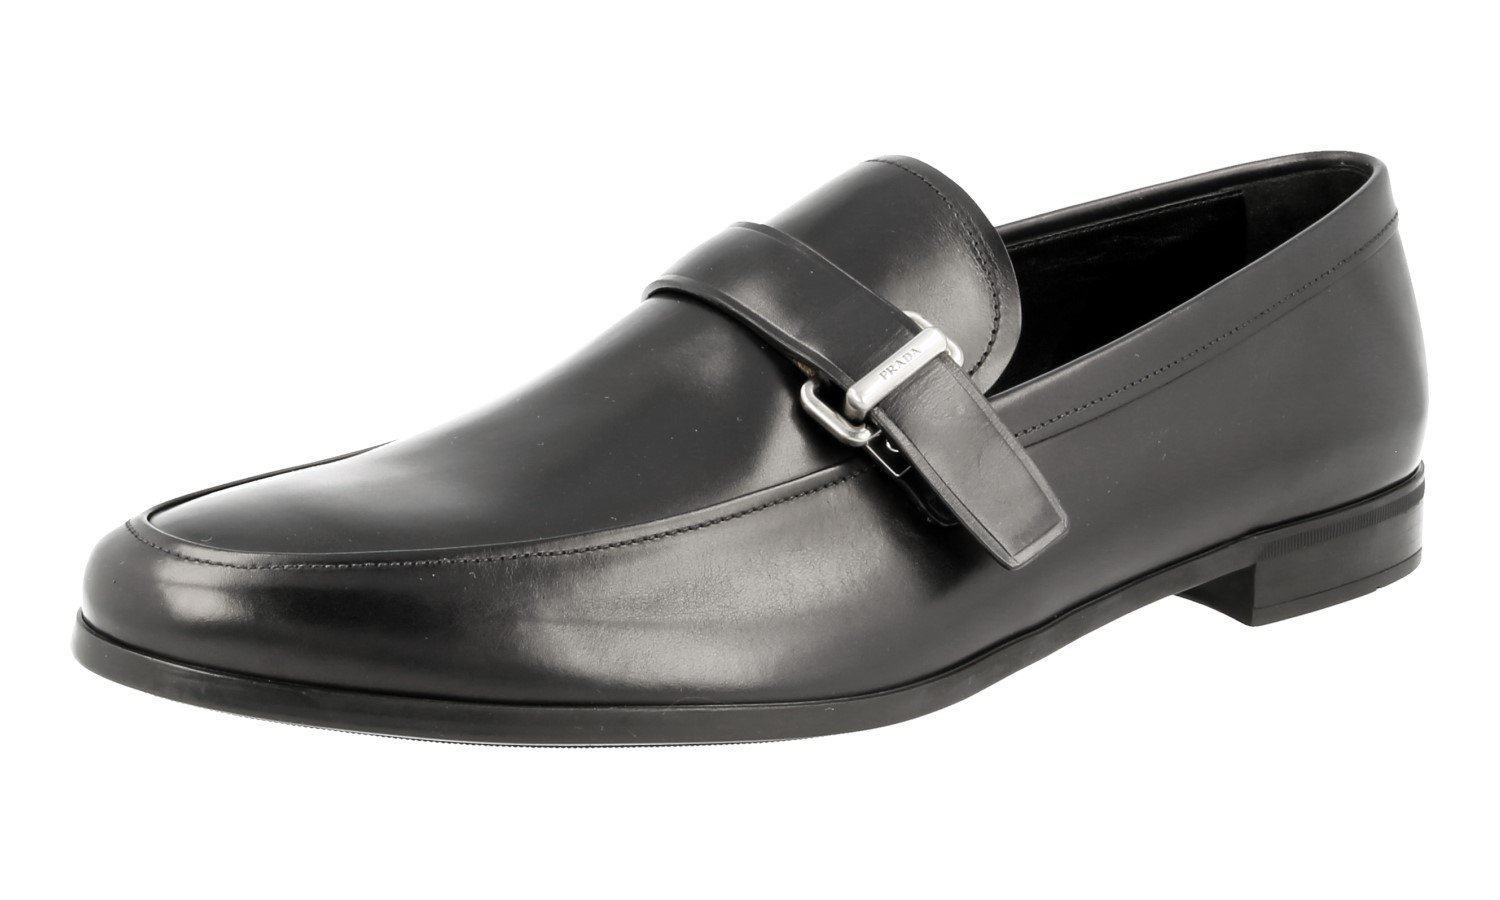 Prada Men's 2DE096 DT7 F0008 Black Leather Business Shoes EU 9 (43) / US 10 by Prada